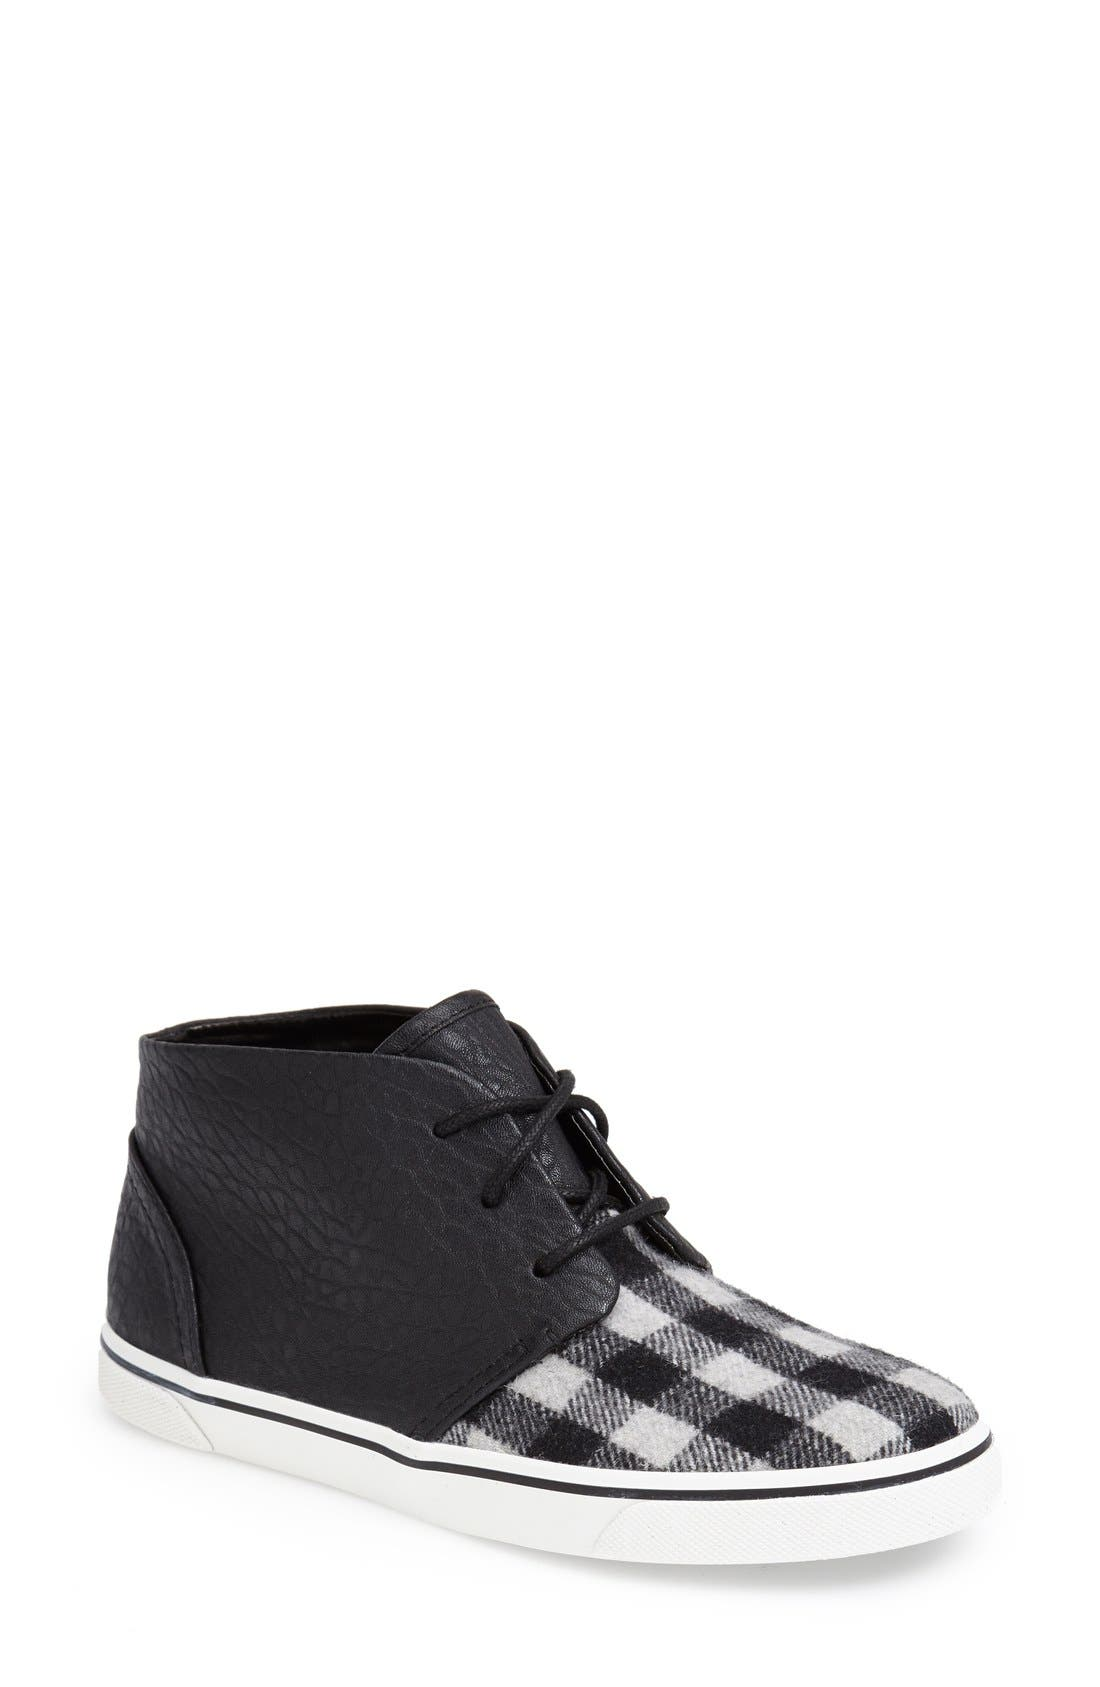 DV by Dolce Vita 'Giaa' Sneaker,                             Main thumbnail 1, color,                             Charcoal/ Black